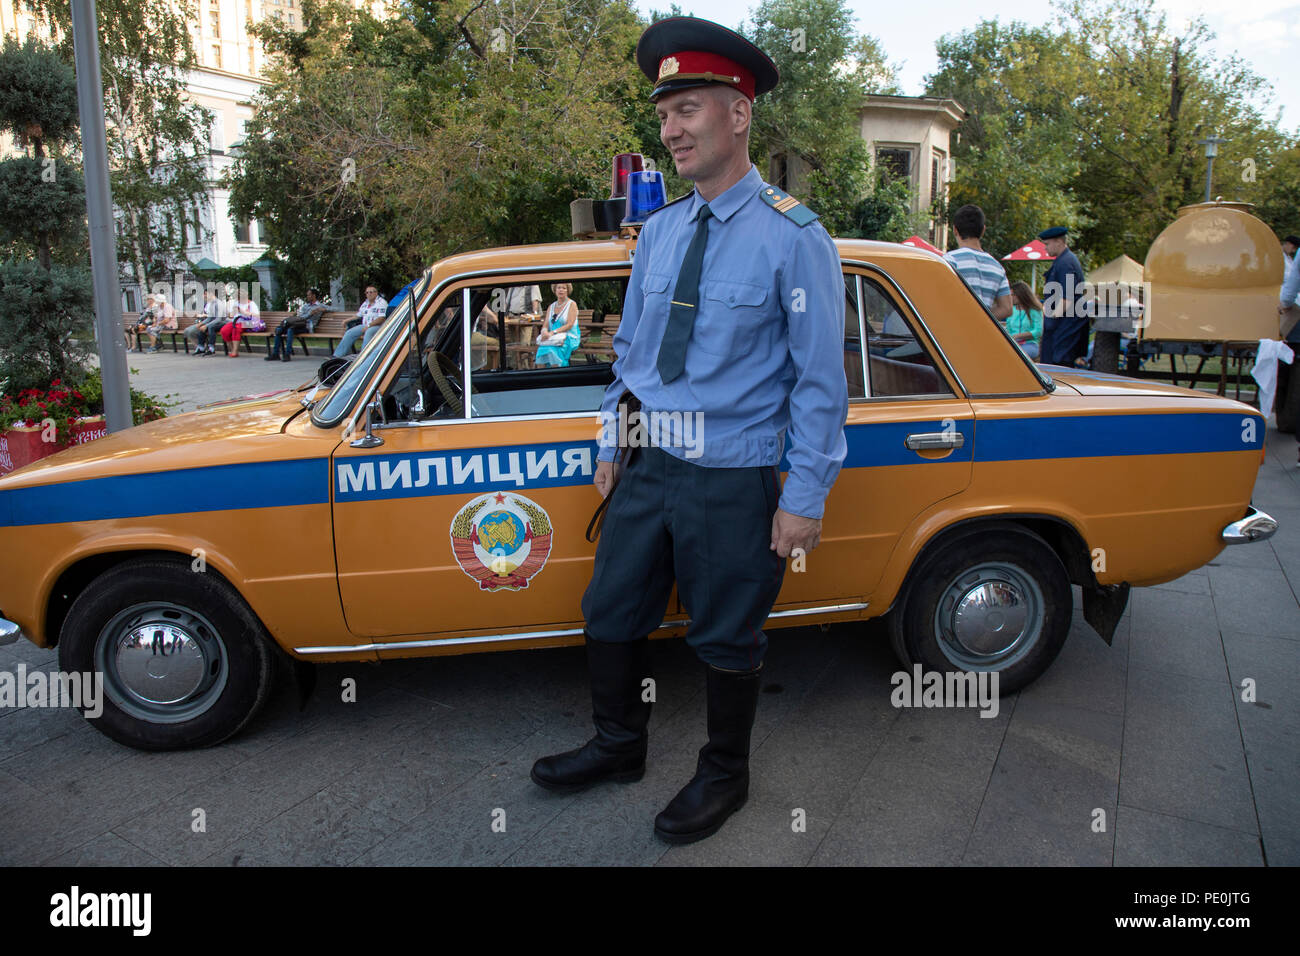 Historical reconstruction of a work of Soviet police in center of Moscow during the 'Times and Epoch' historical festival, Russia - Stock Image